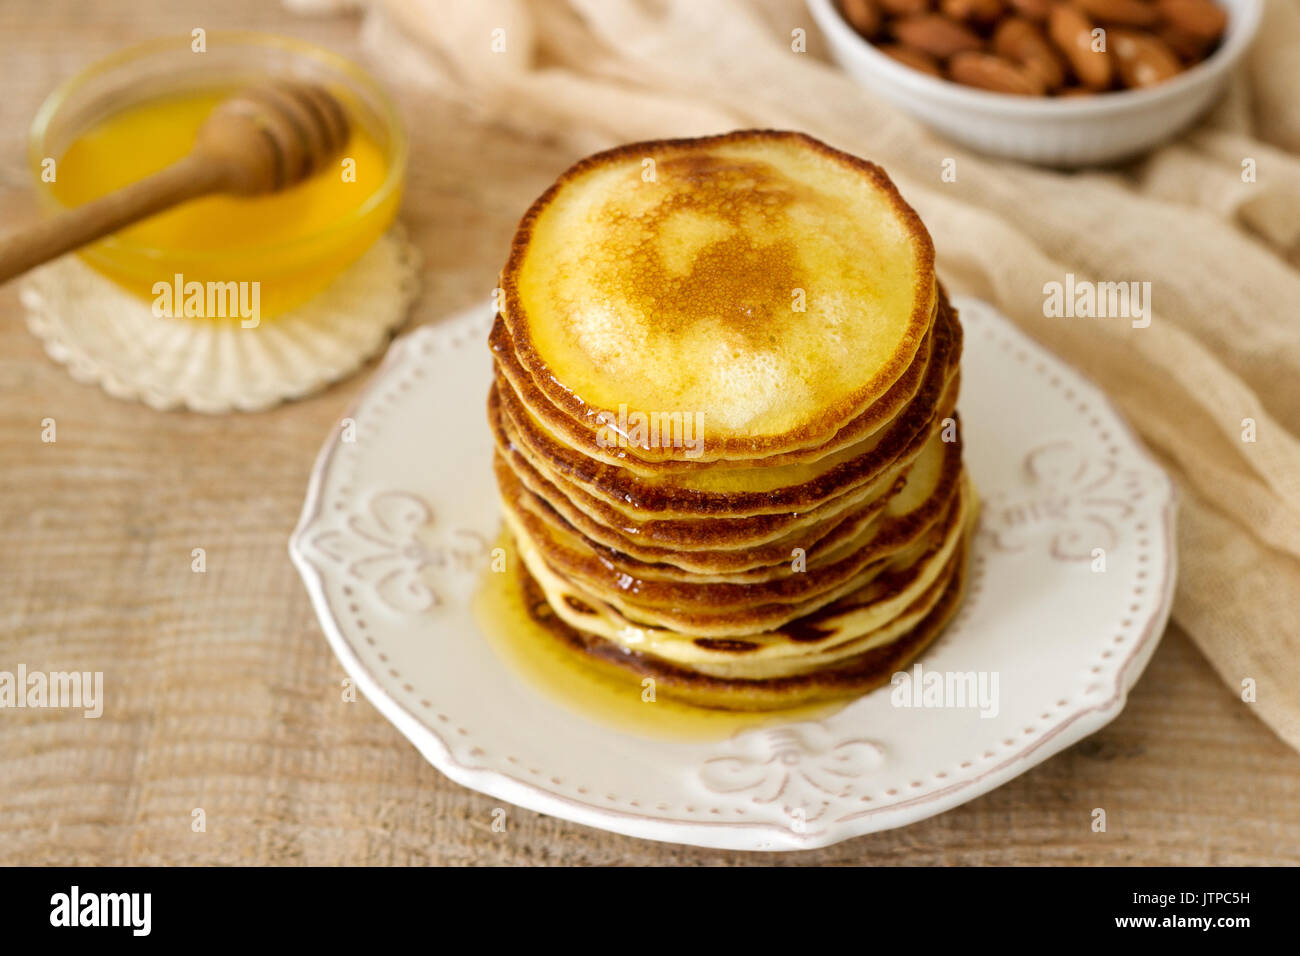 Homemade pancakes with honey and nuts, breakfast. - Stock Image